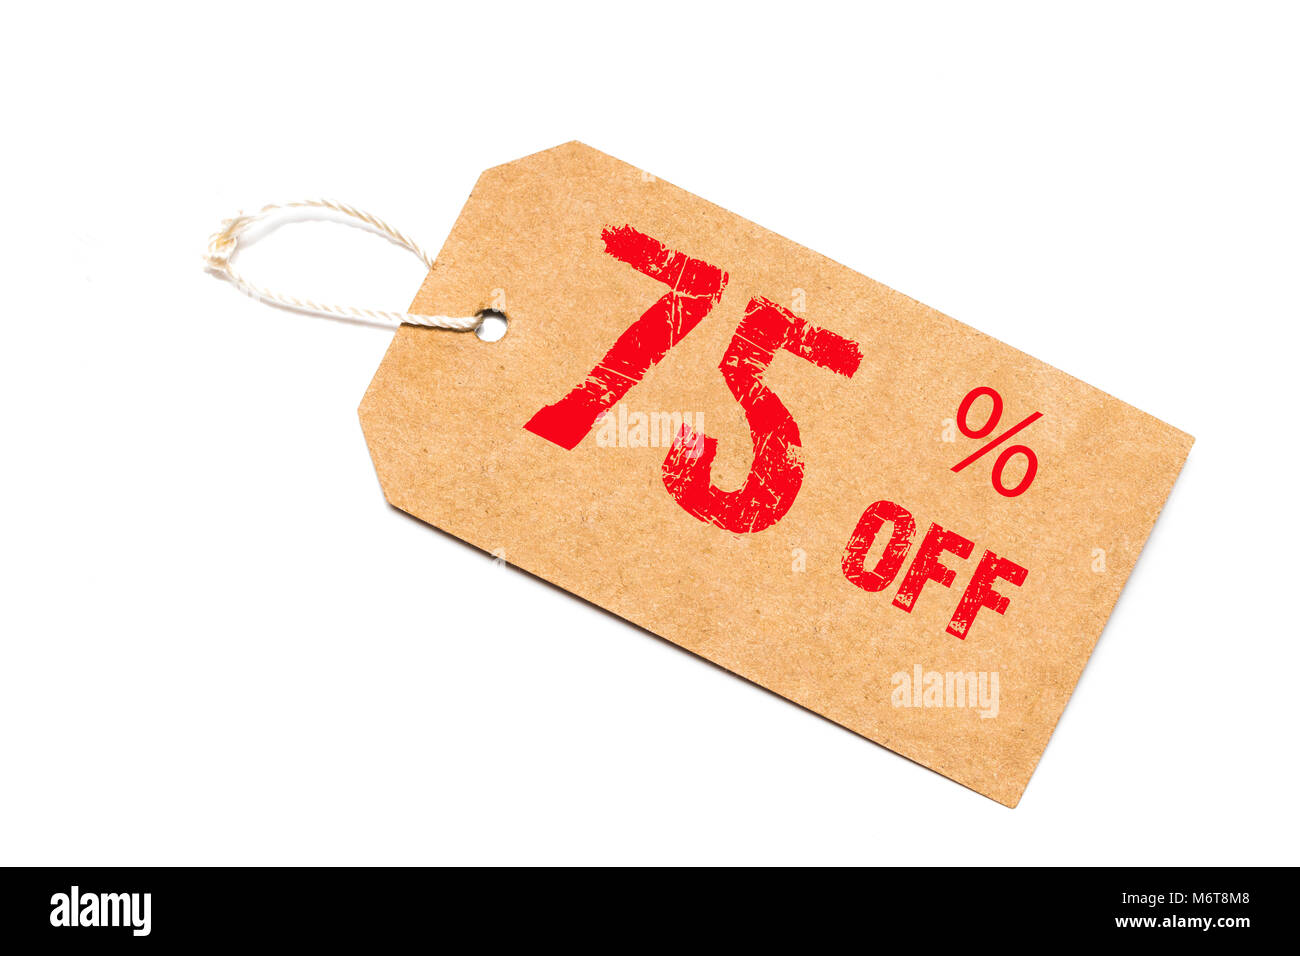 seventy-five percent off discount - a paper price tag on white background. - Stock Image